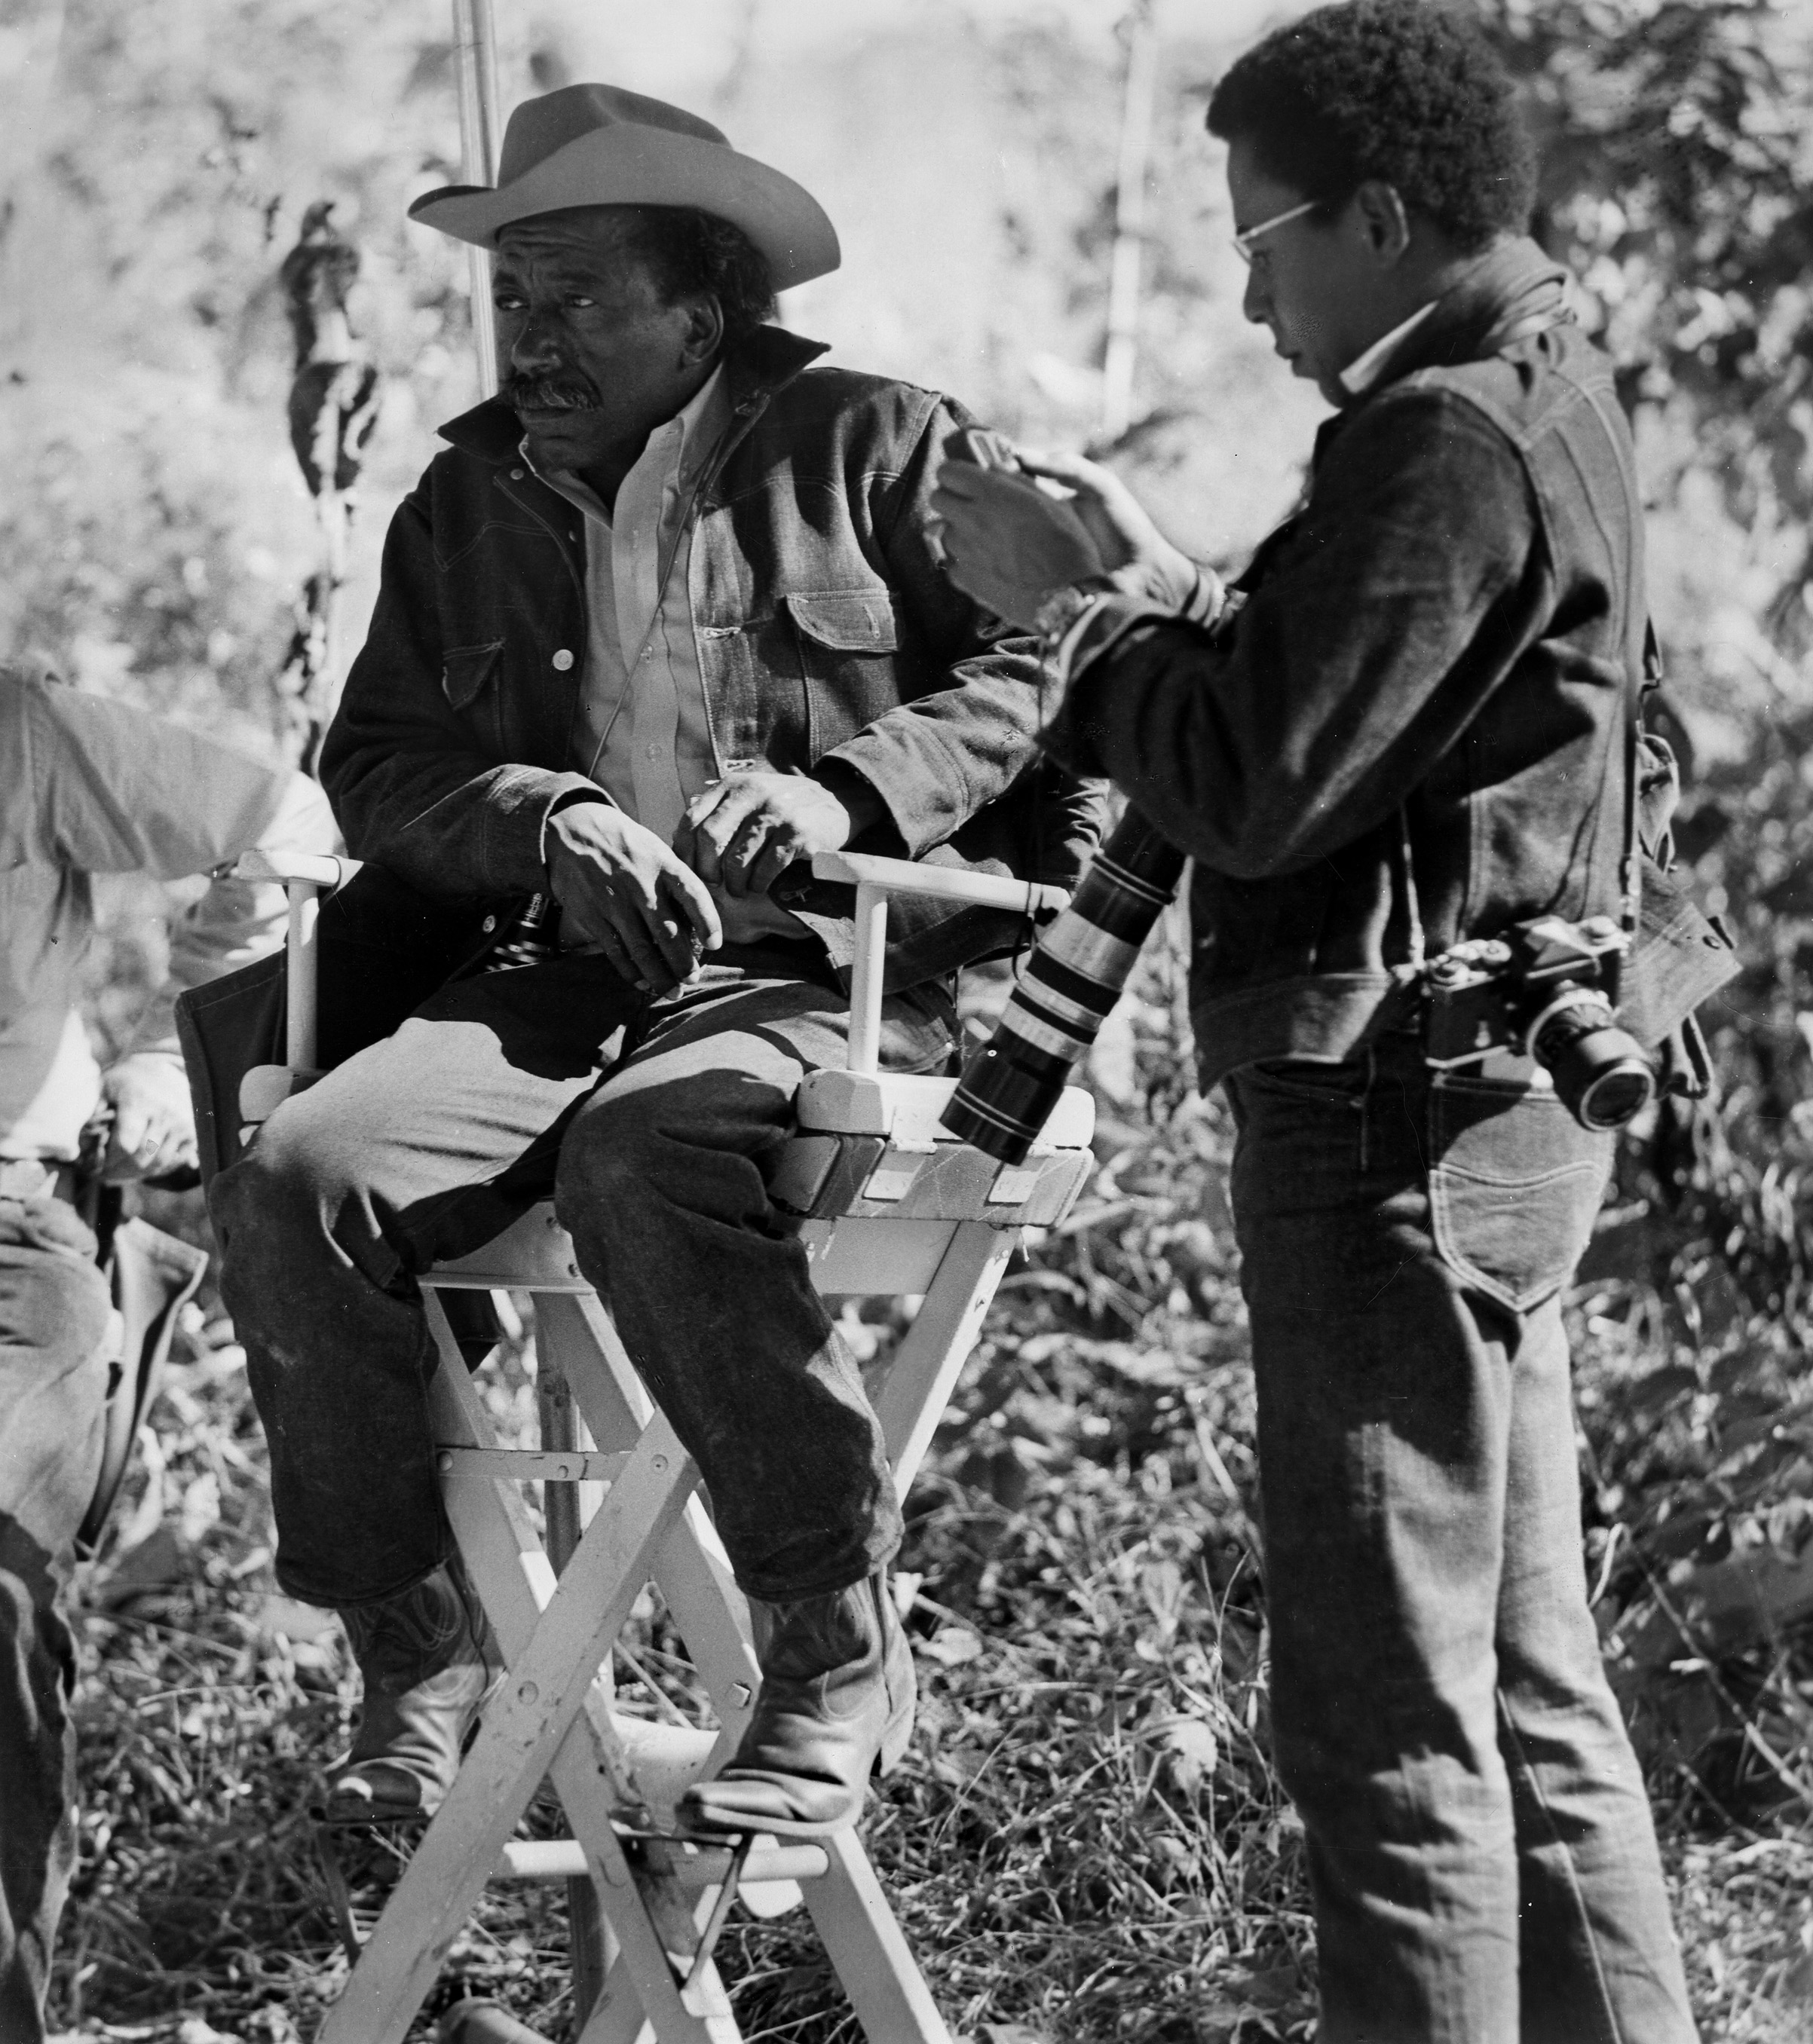 Publicity still portrait of American directors Gordon Parks Sr and his son Gordon Parks Jr on the set of the Warner Bros. film 'The Learning Tree,' circa 1969.